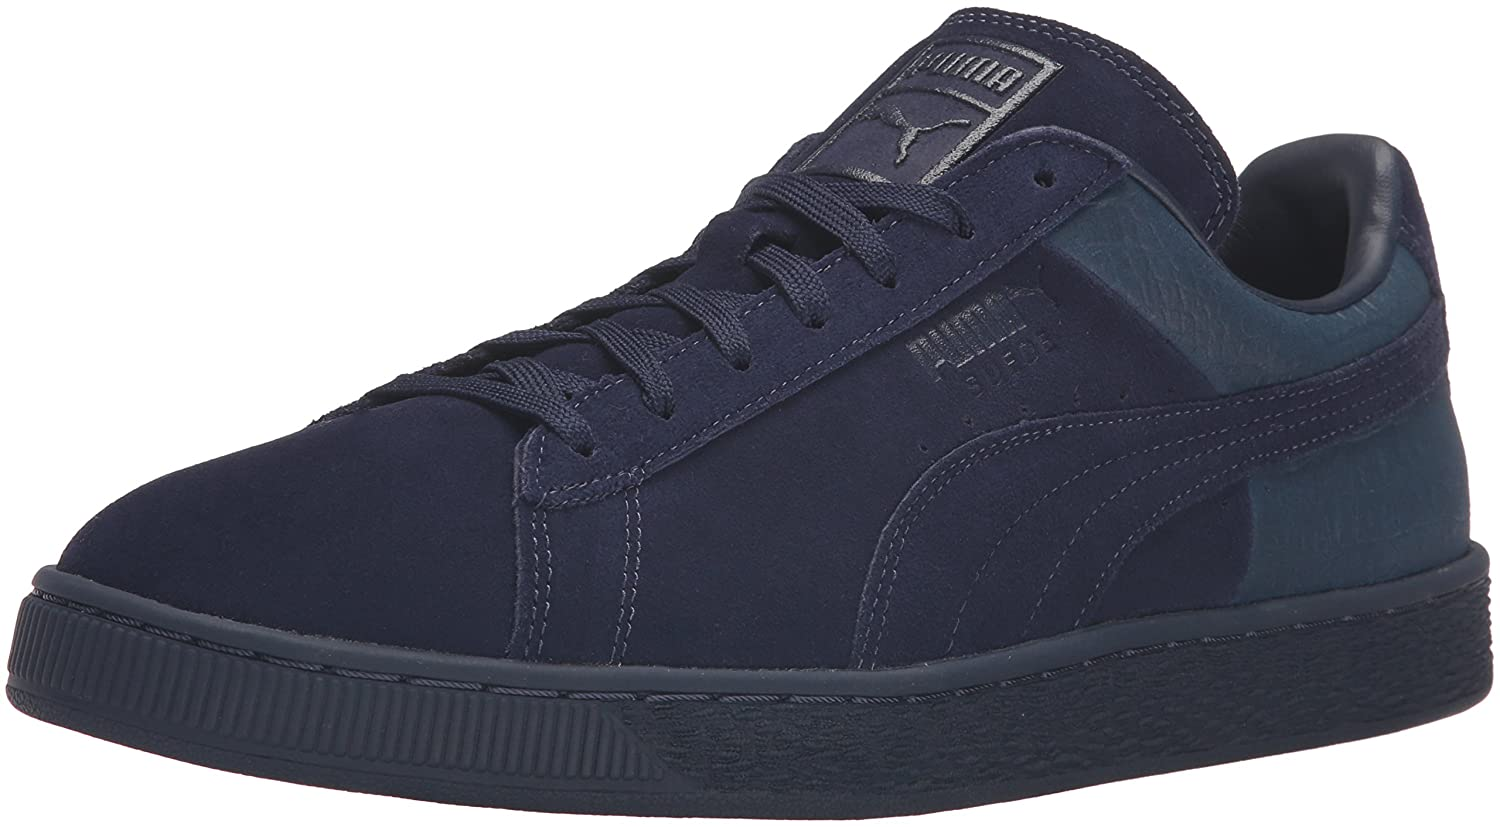 info for 56bc6 cf436 PUMA Men's Suede Classic Casual Emboss Fashion Sneaker